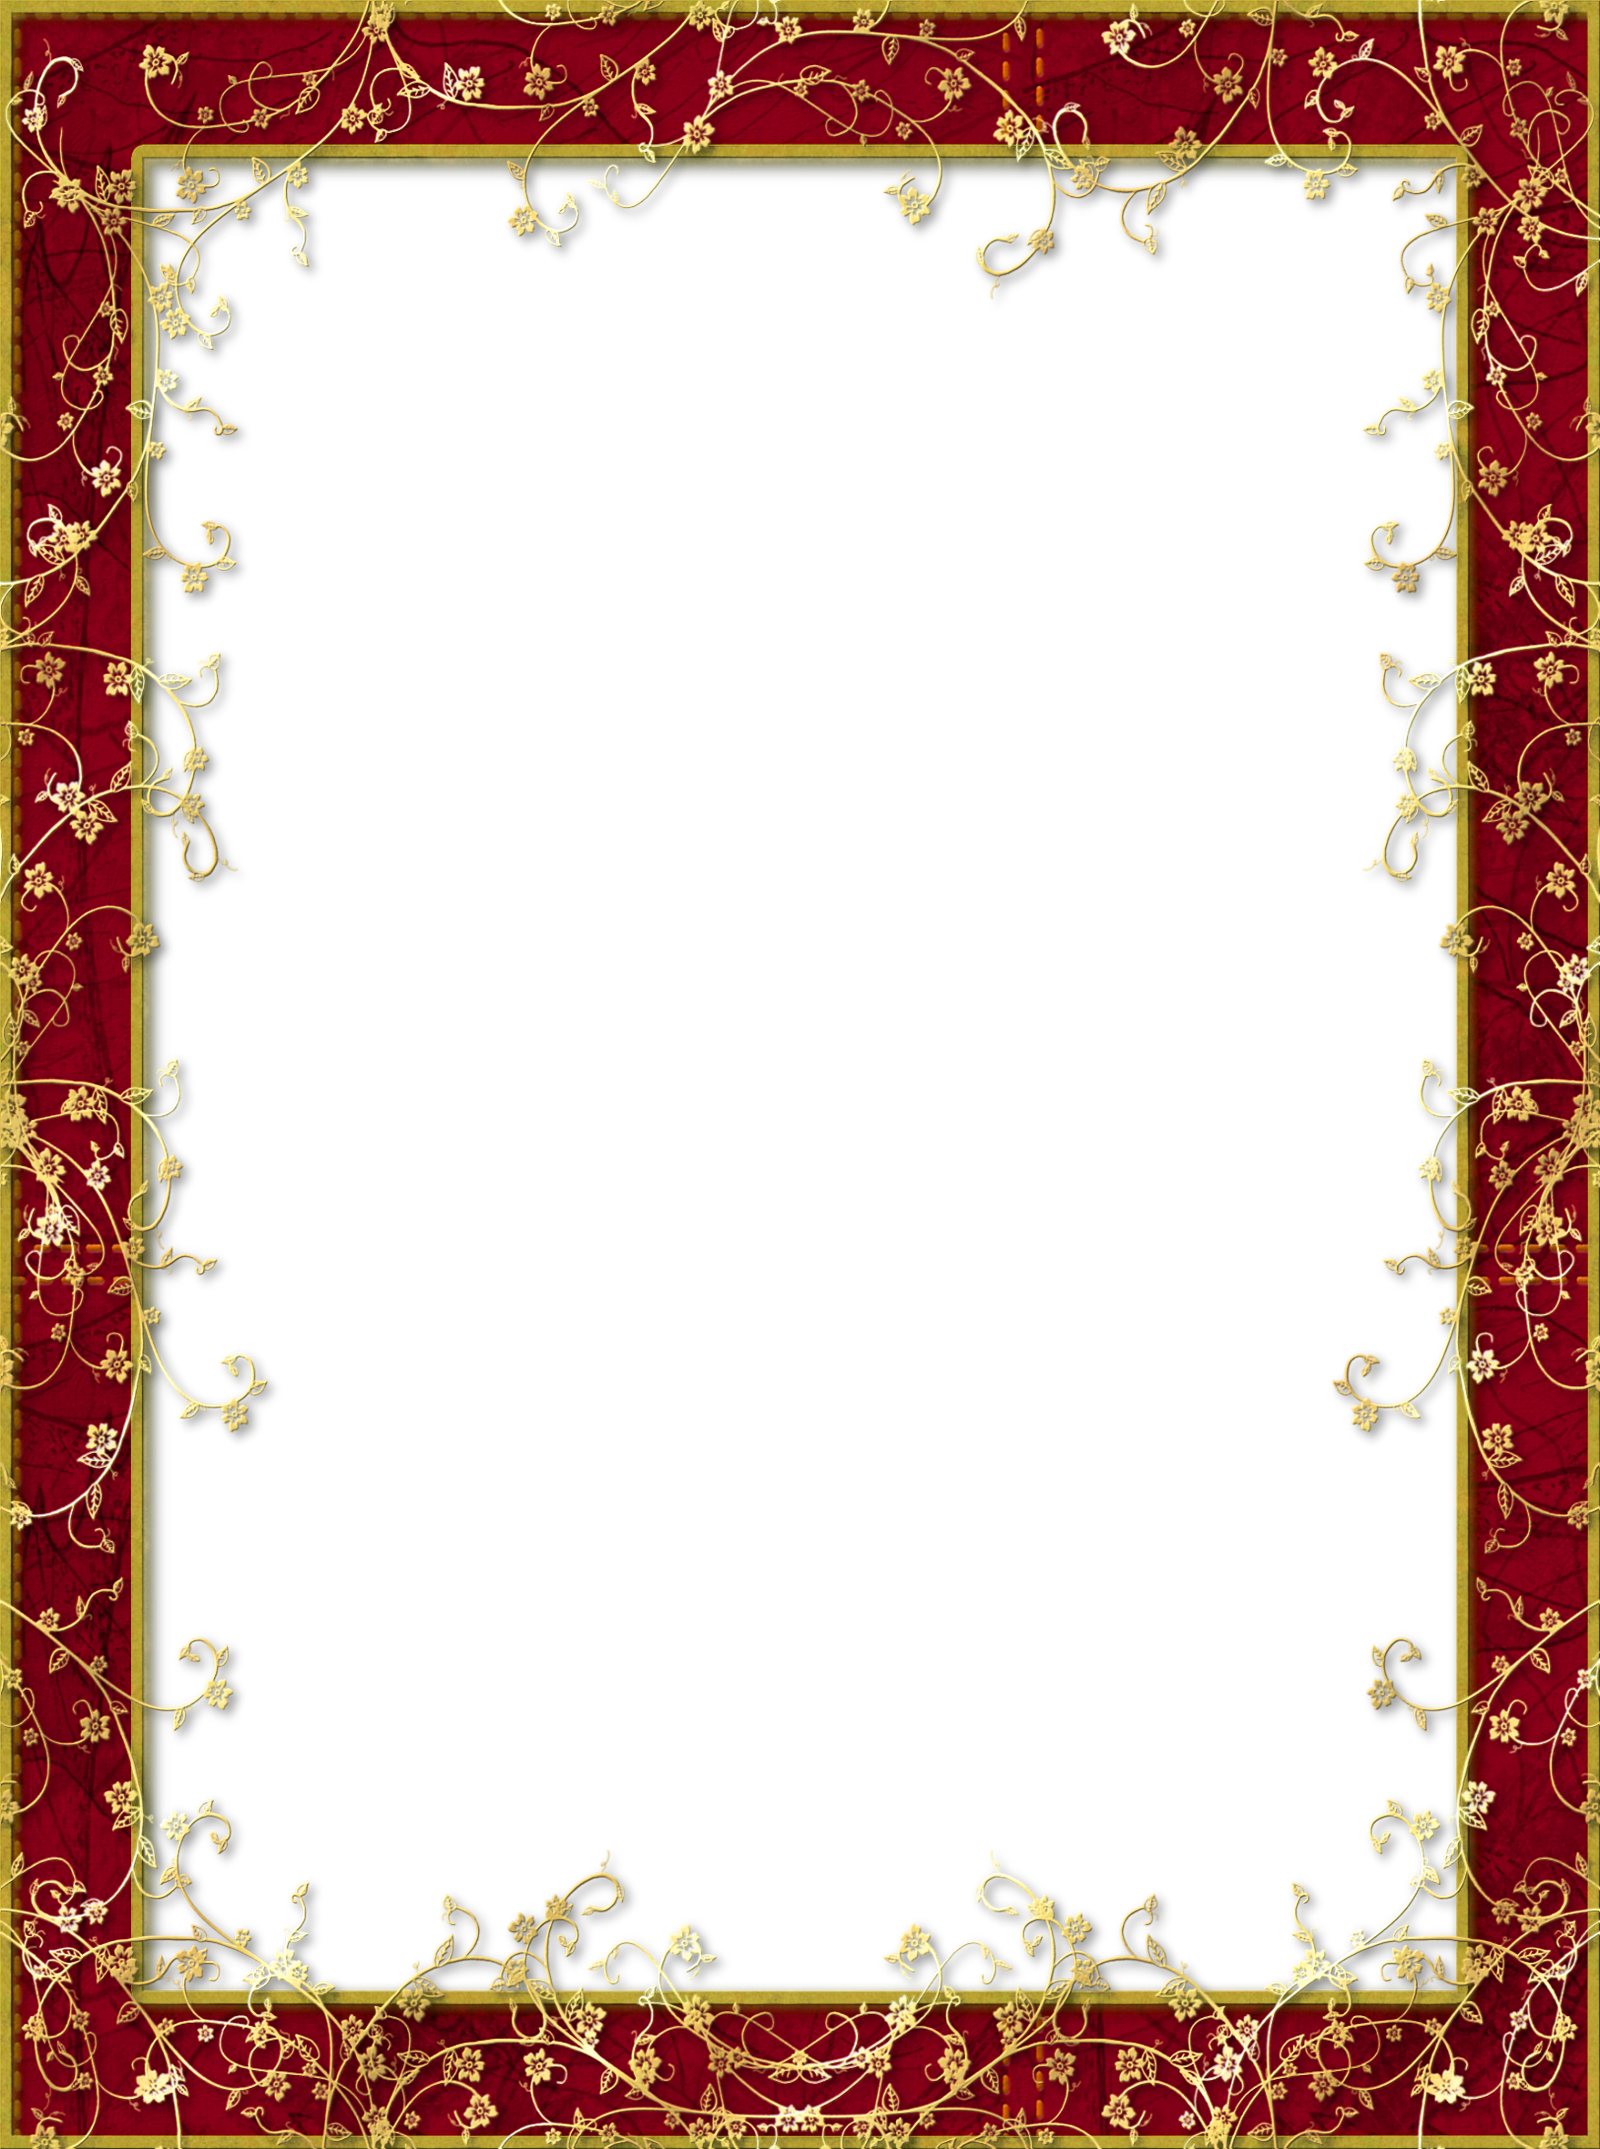 Png borders and frames. Red transparent frame with